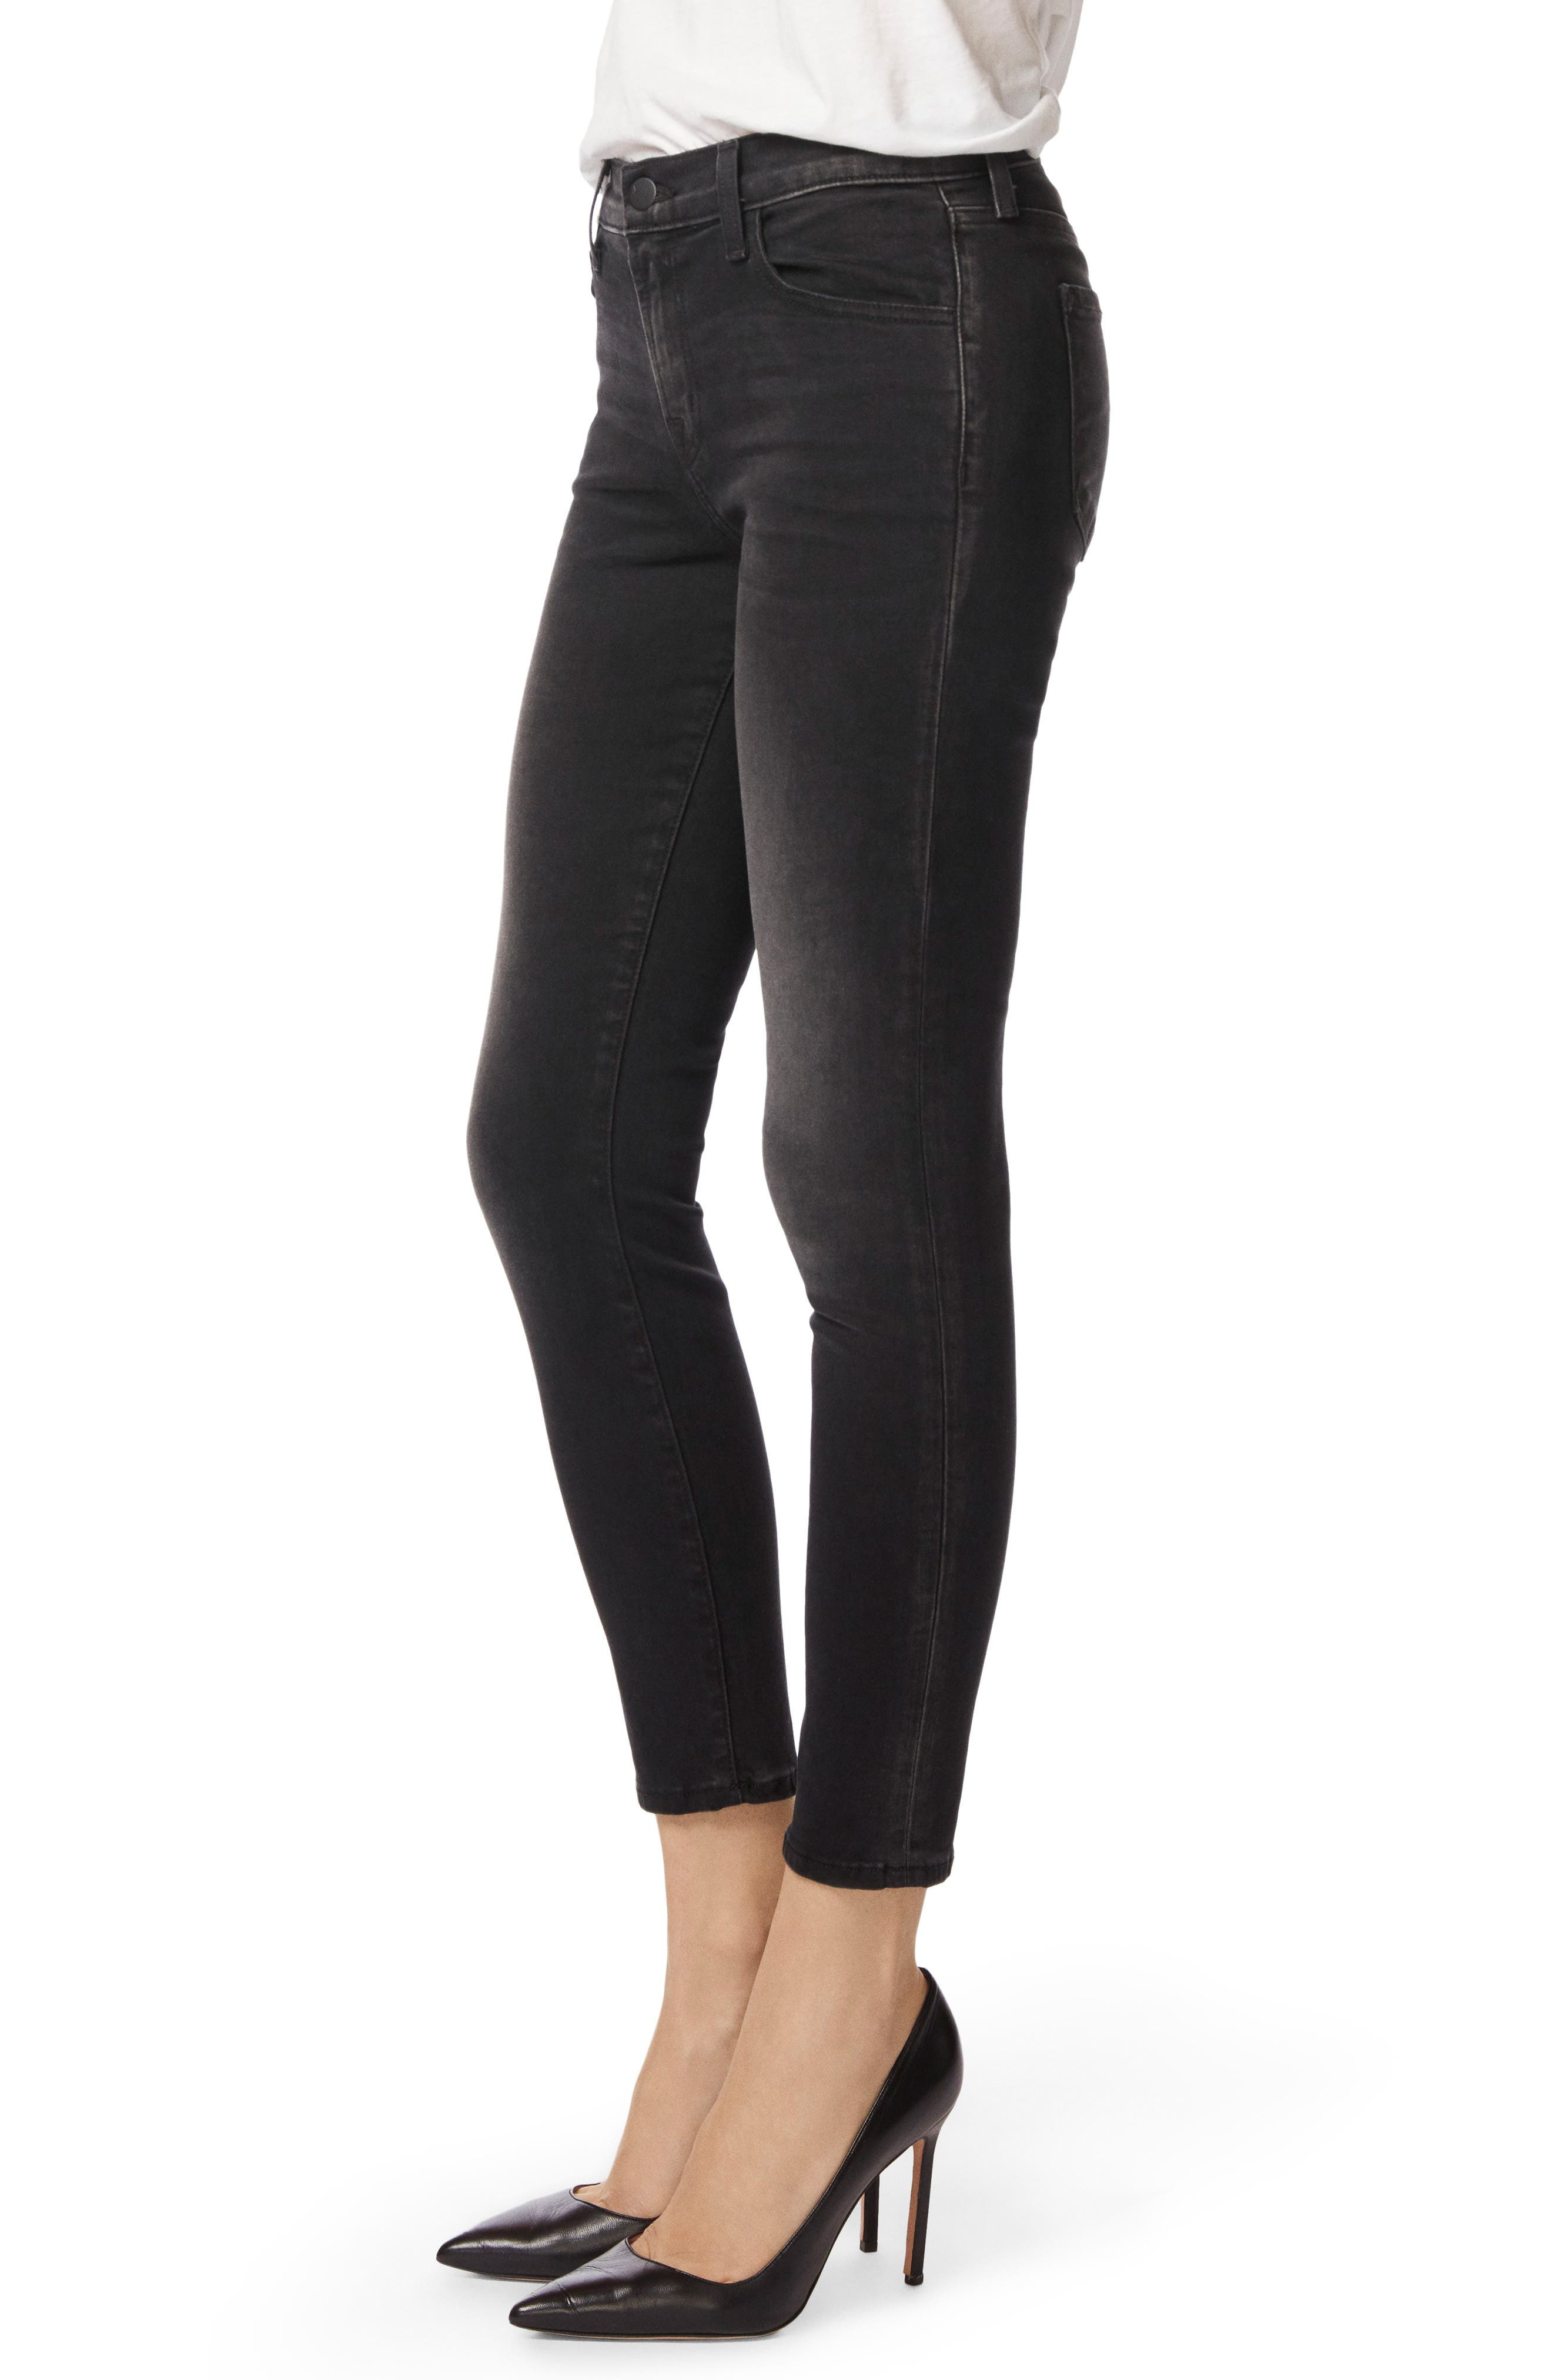 Capri Skinny Jeans,                             Alternate thumbnail 3, color,                             001